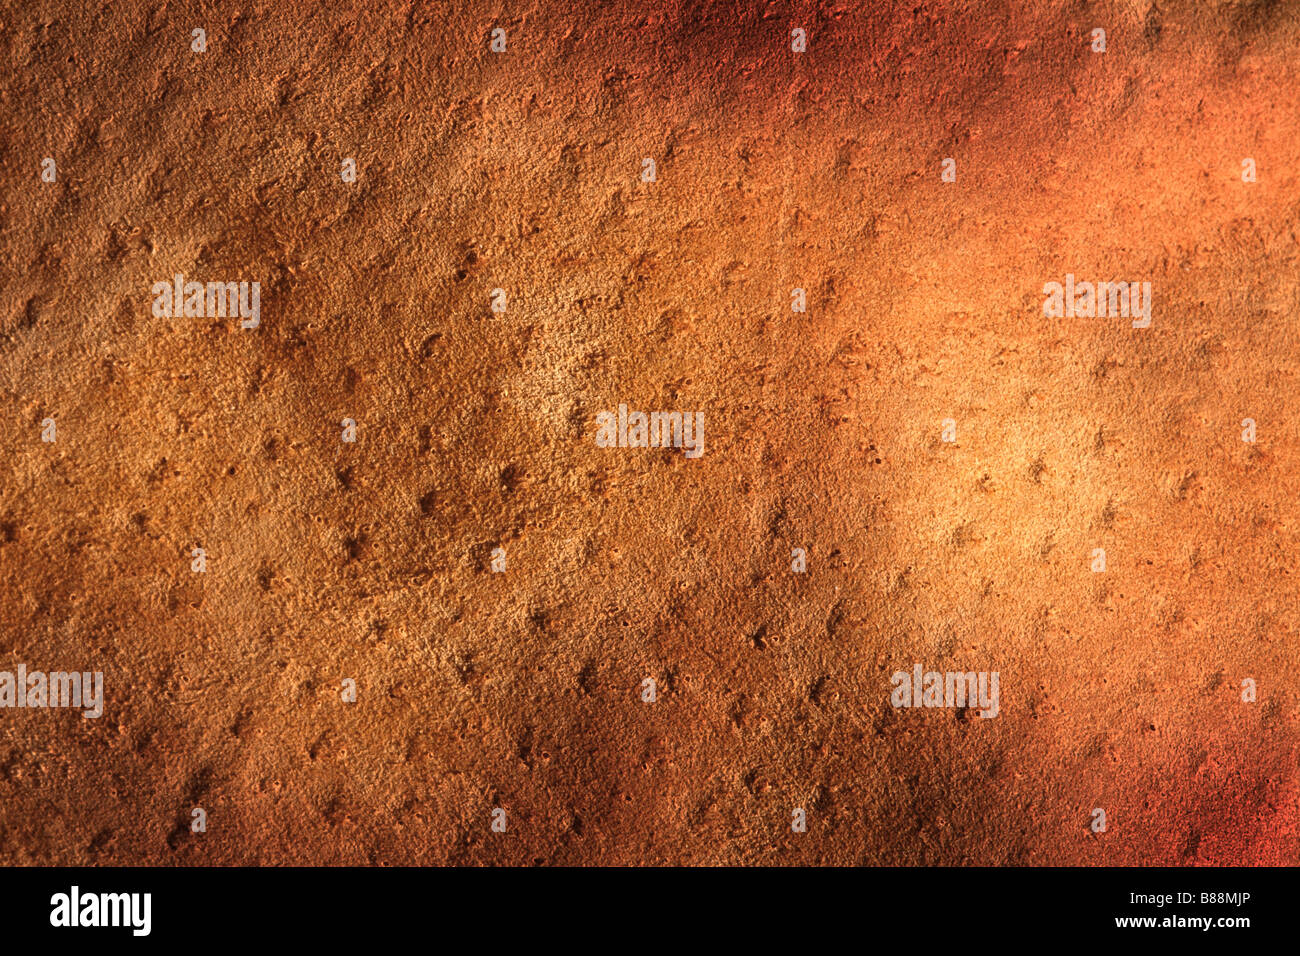 fine image of Old tattered leather background - Stock Image